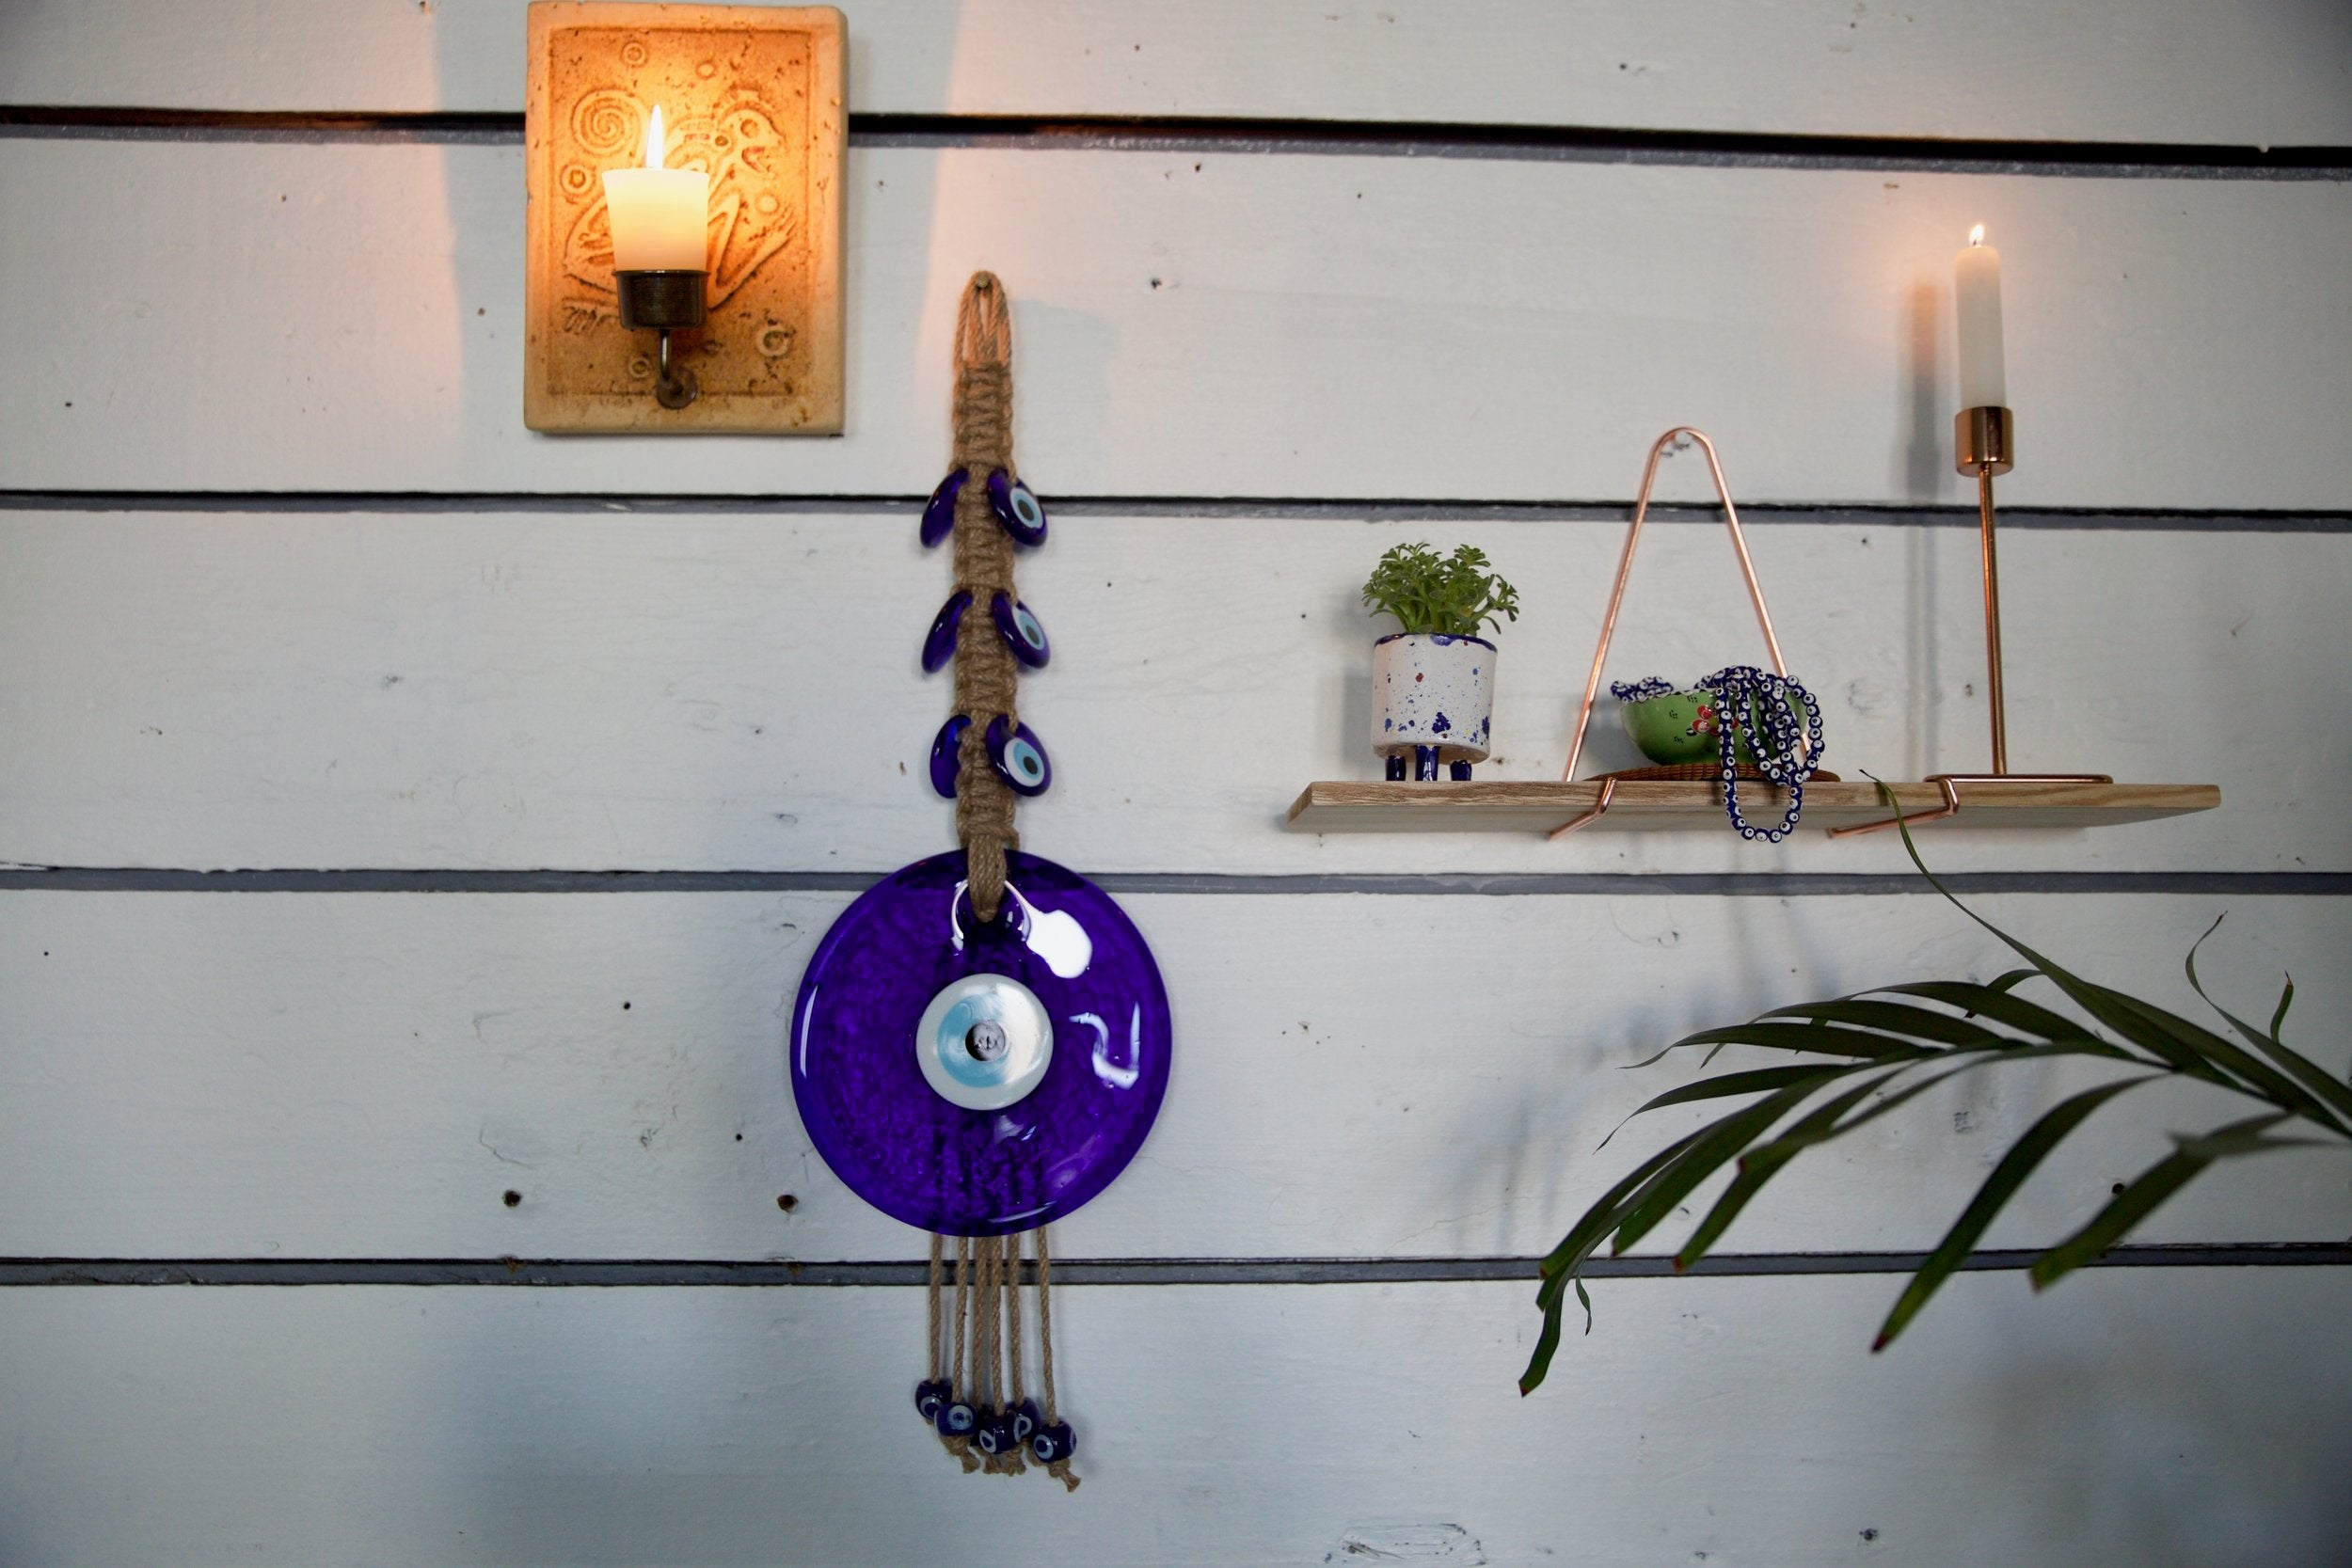 glass-evil-eye-protection-wall-hanging-decoration-4